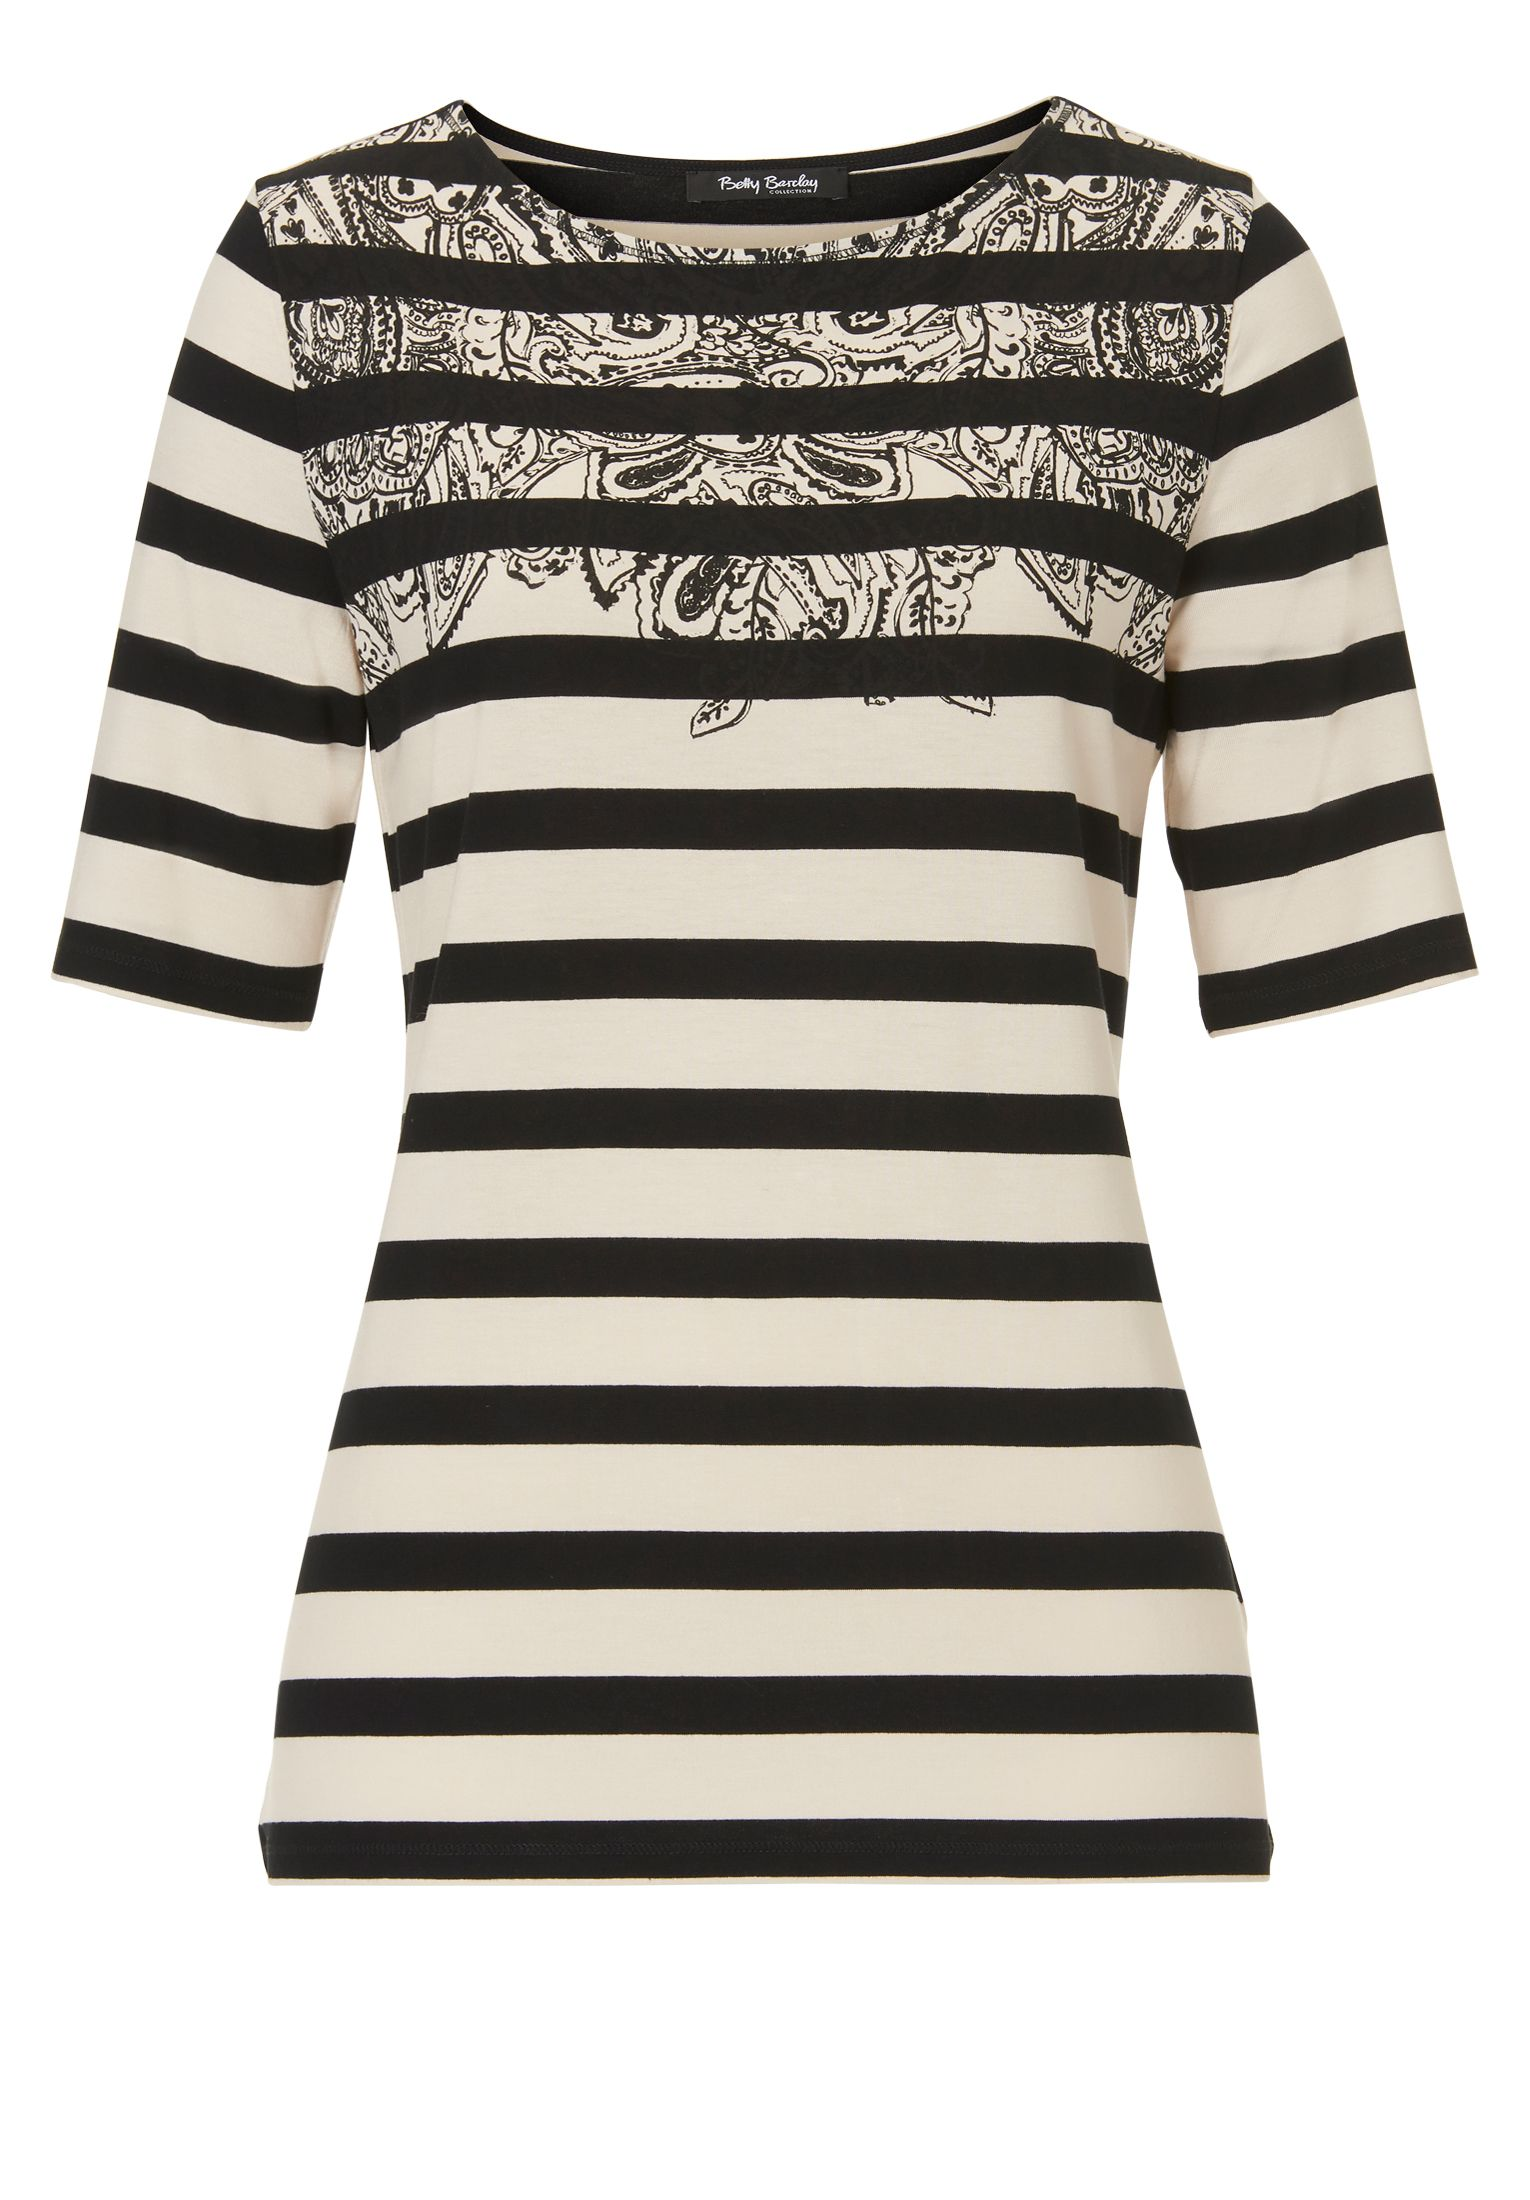 Betty Barclay Print and stripe T-shirt, Multi-Coloured